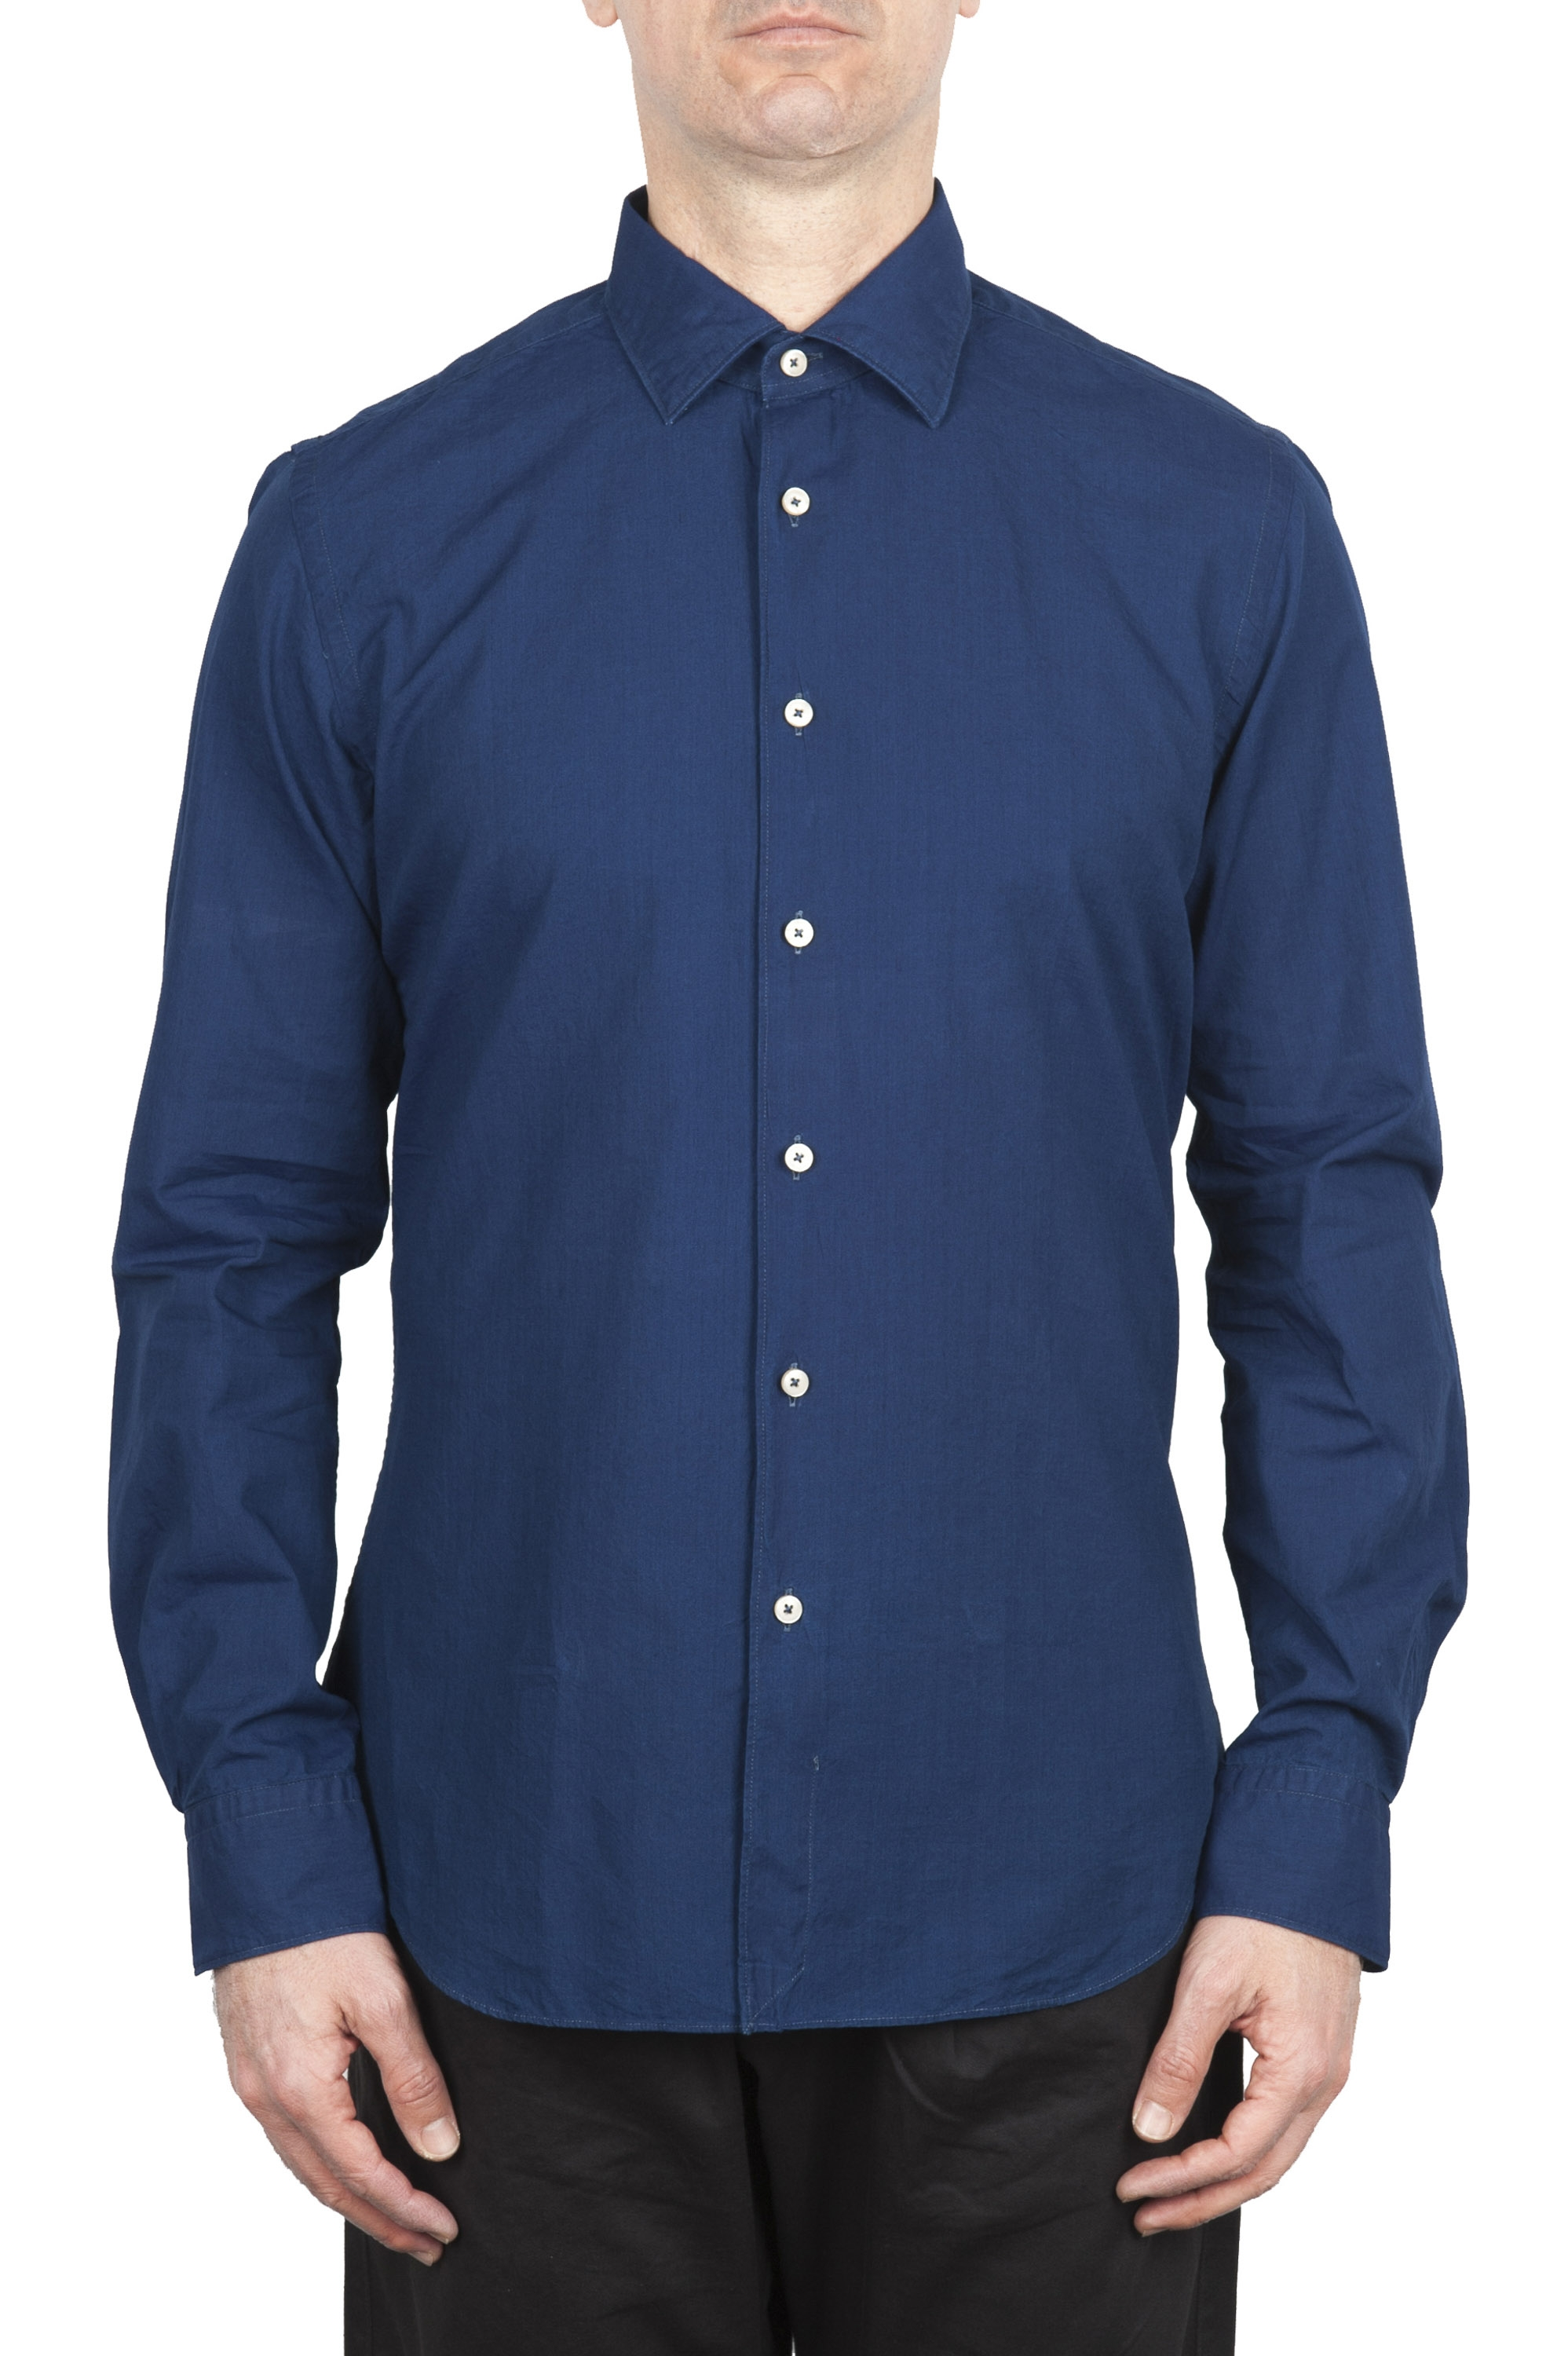 SBU 01635 Camicia in cotone chambray indaco scuro 01